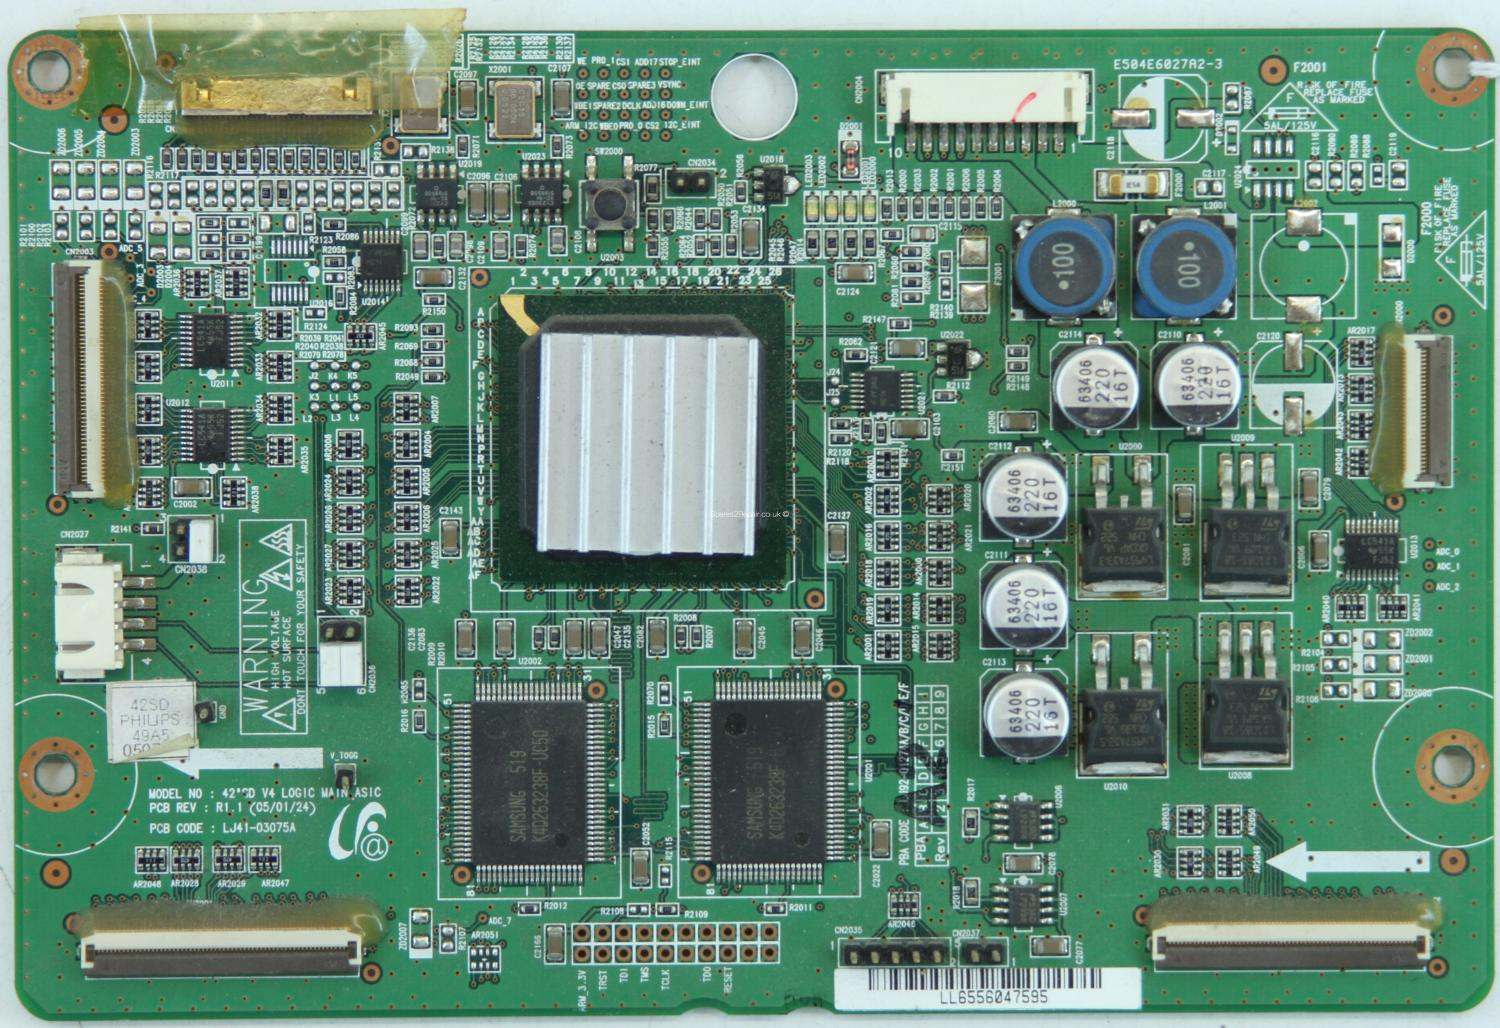 Philips 42PF3320/10 - LVDS - LJ41-03075A R1.1 - LJ92-01274D A1 - 42SD V4 LOGIC MAIN_ASIC